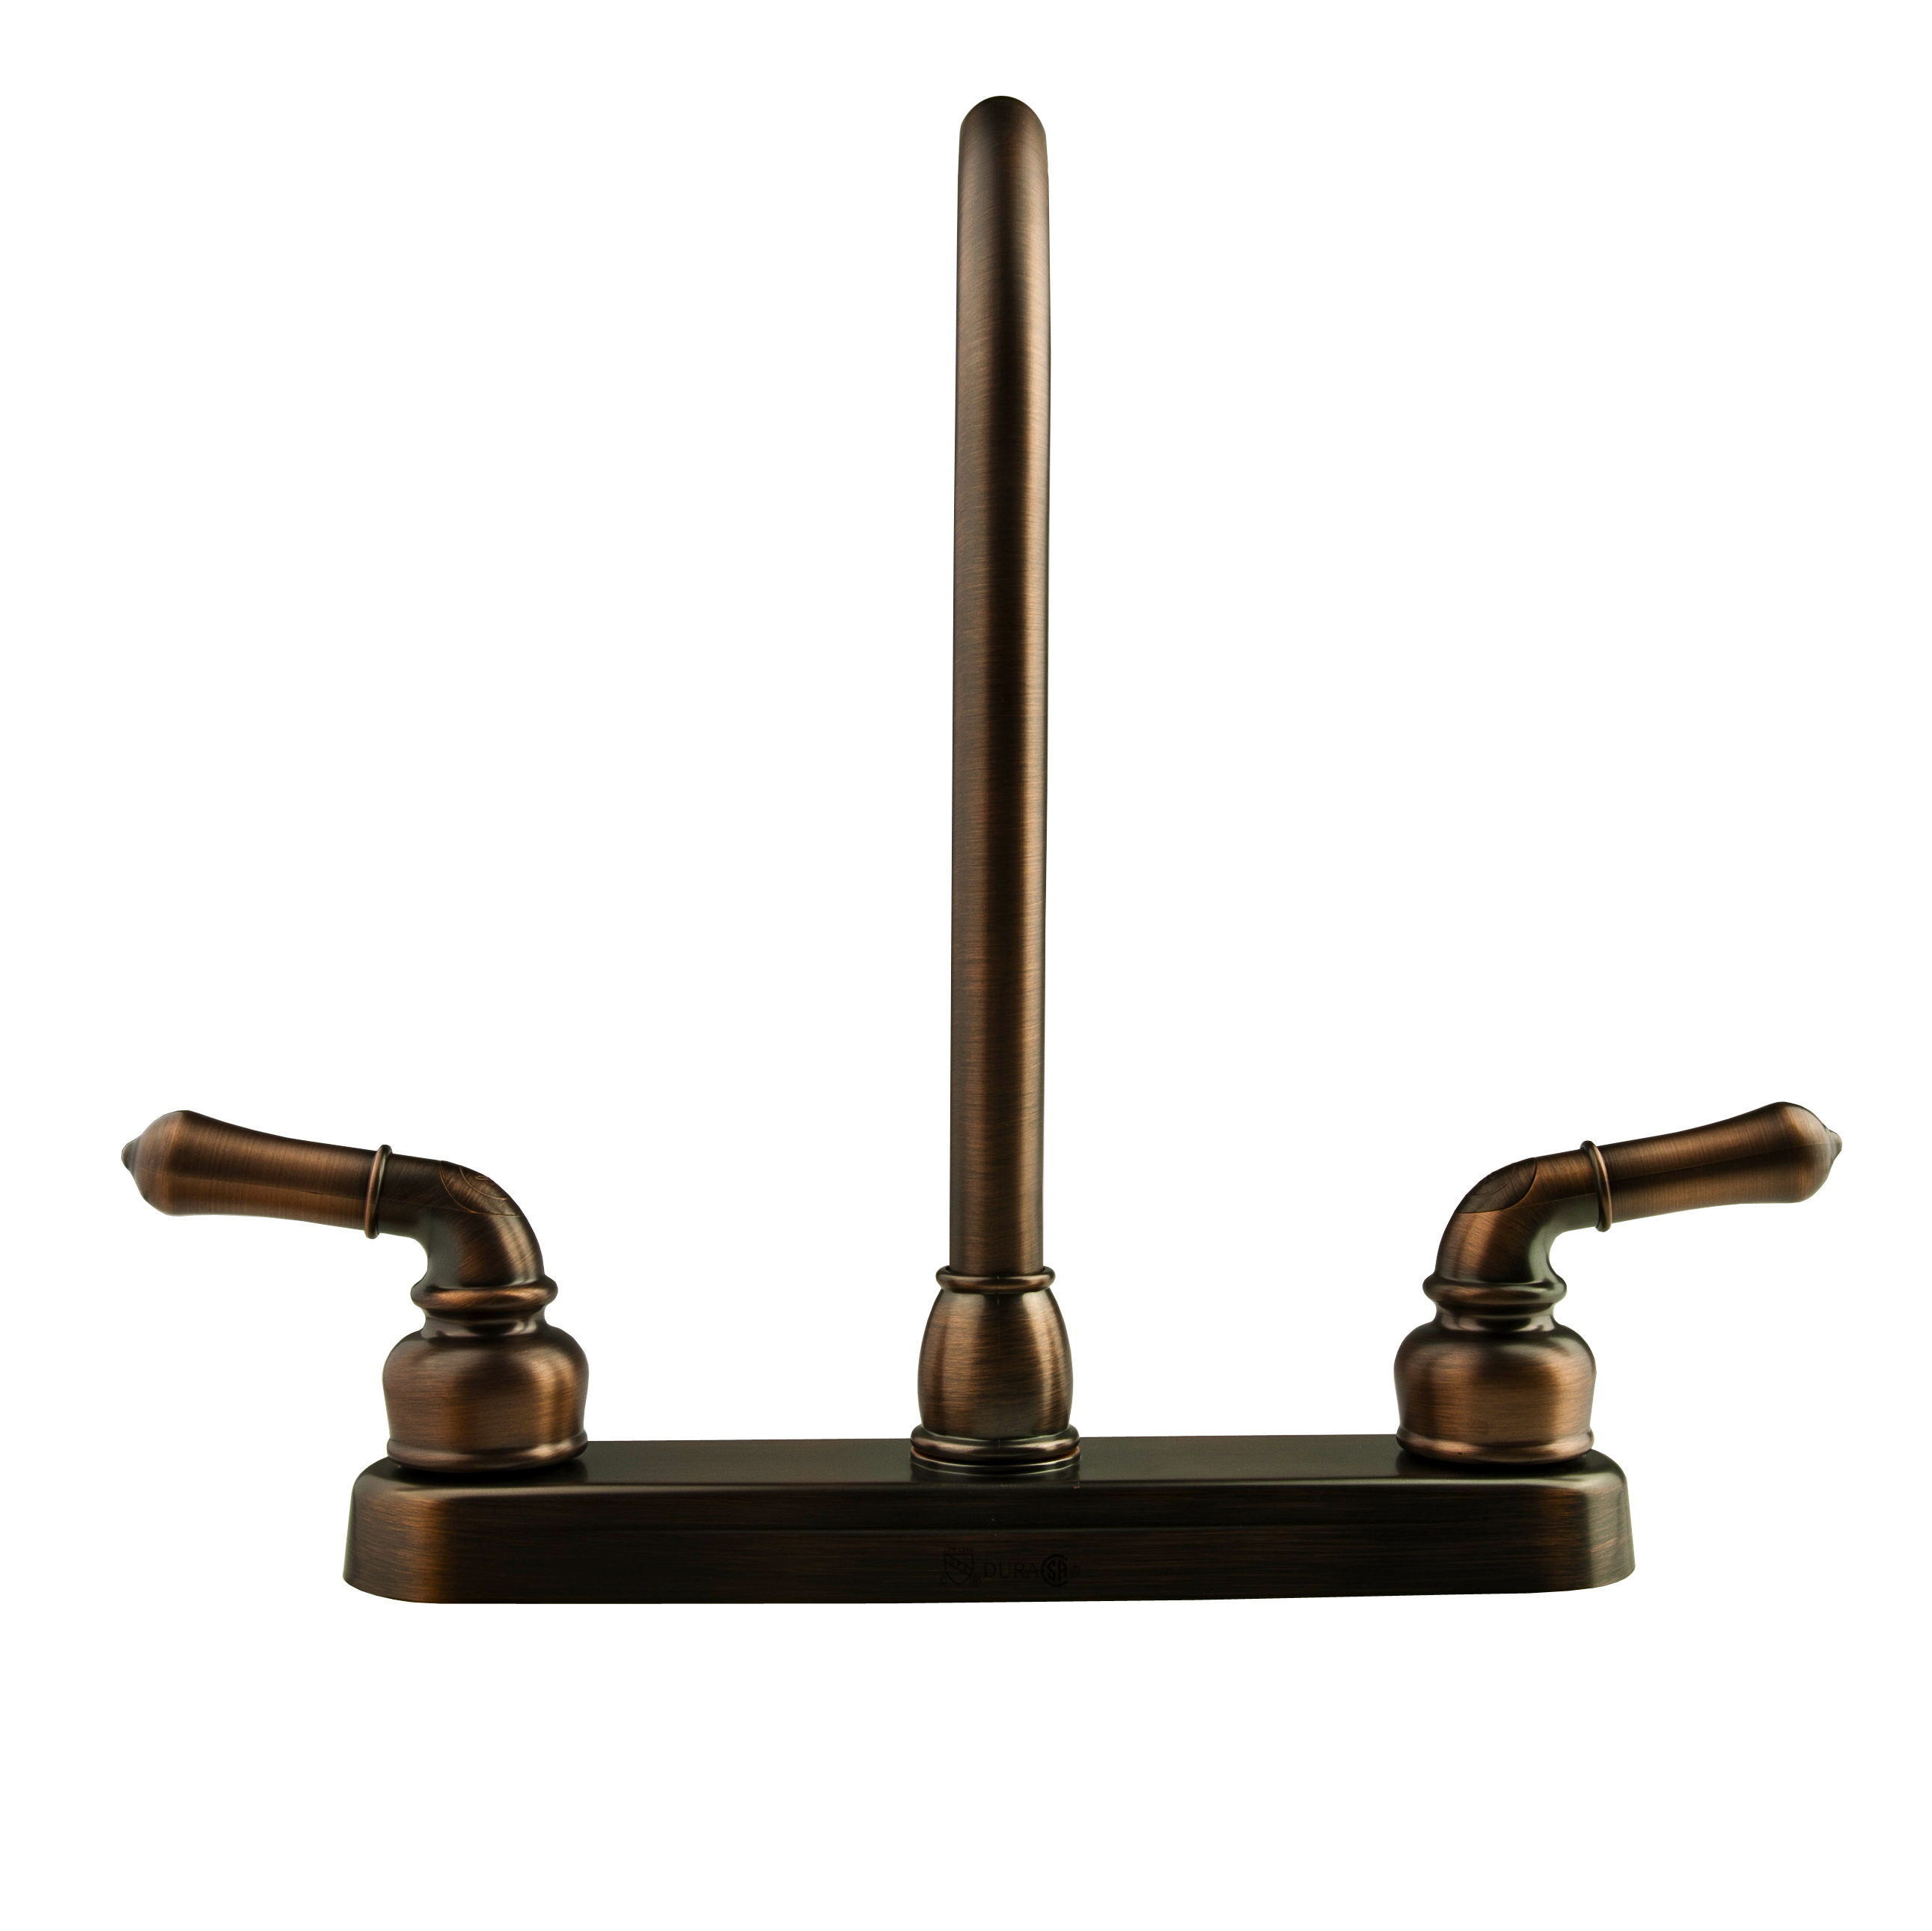 DF-PK330HC-ORB Dura Faucet Faucet Used For Kitchen